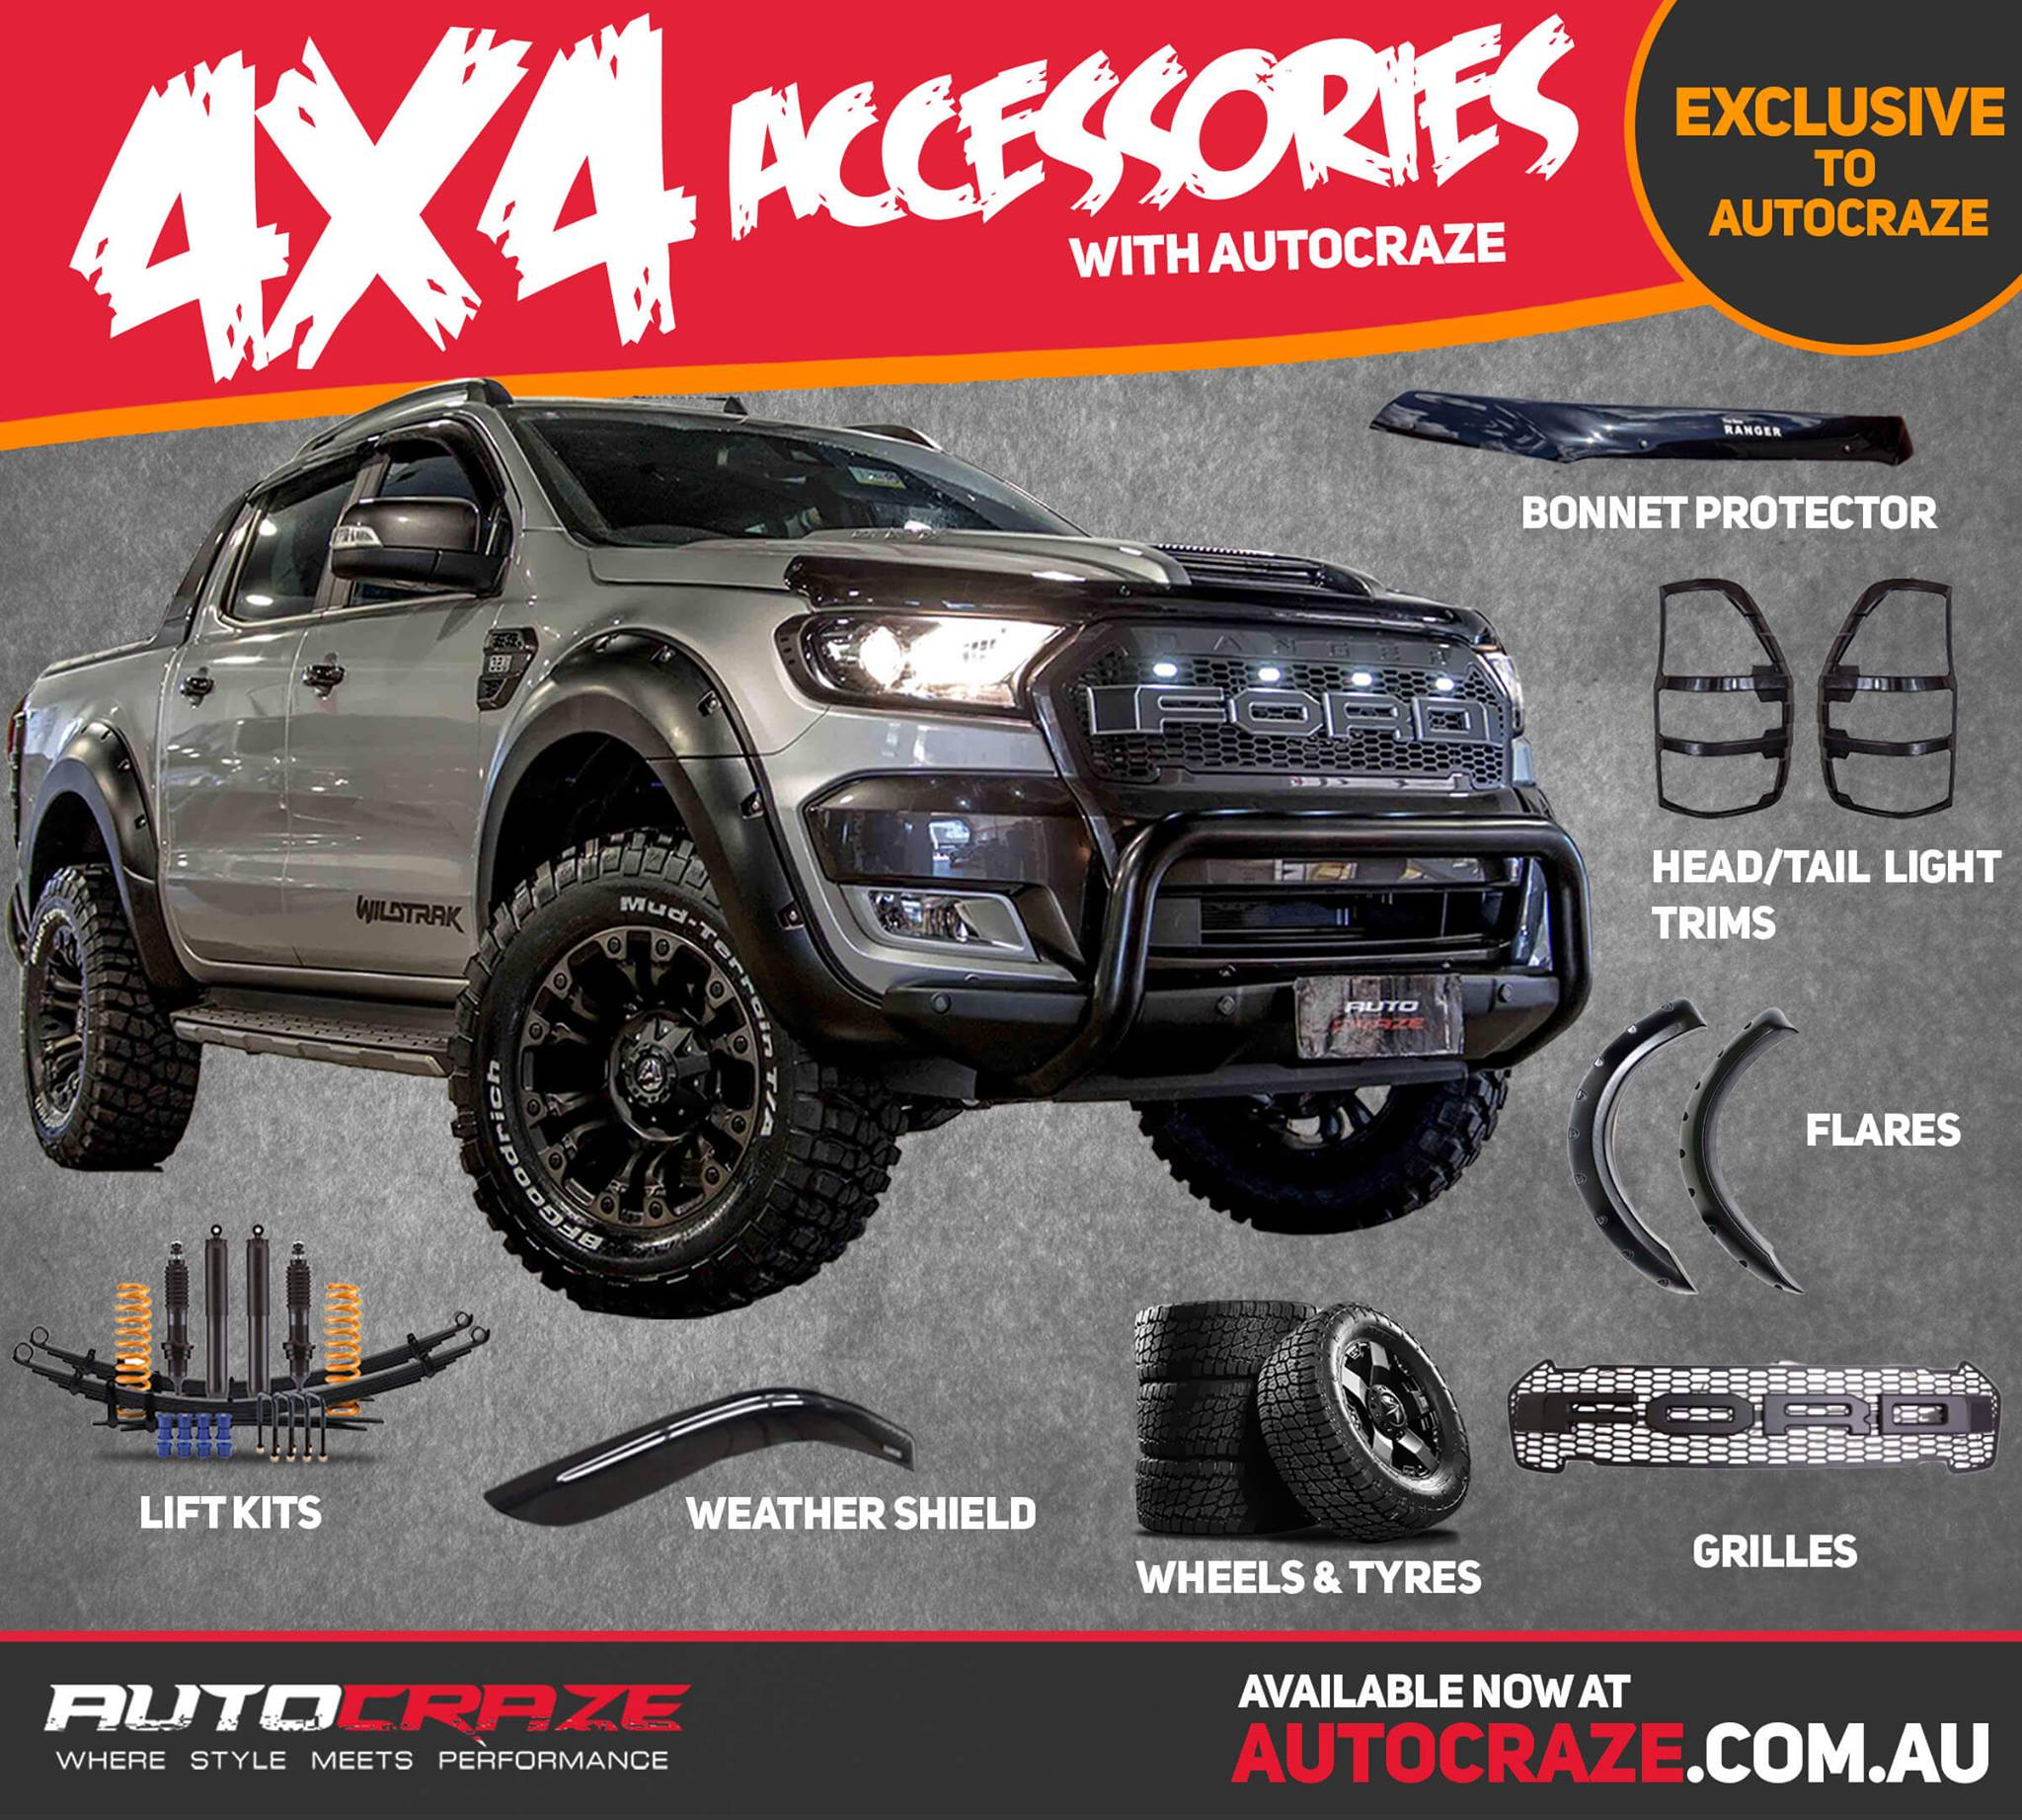 4wd Accessories Cheap 4wd Accessories Online Store Direct